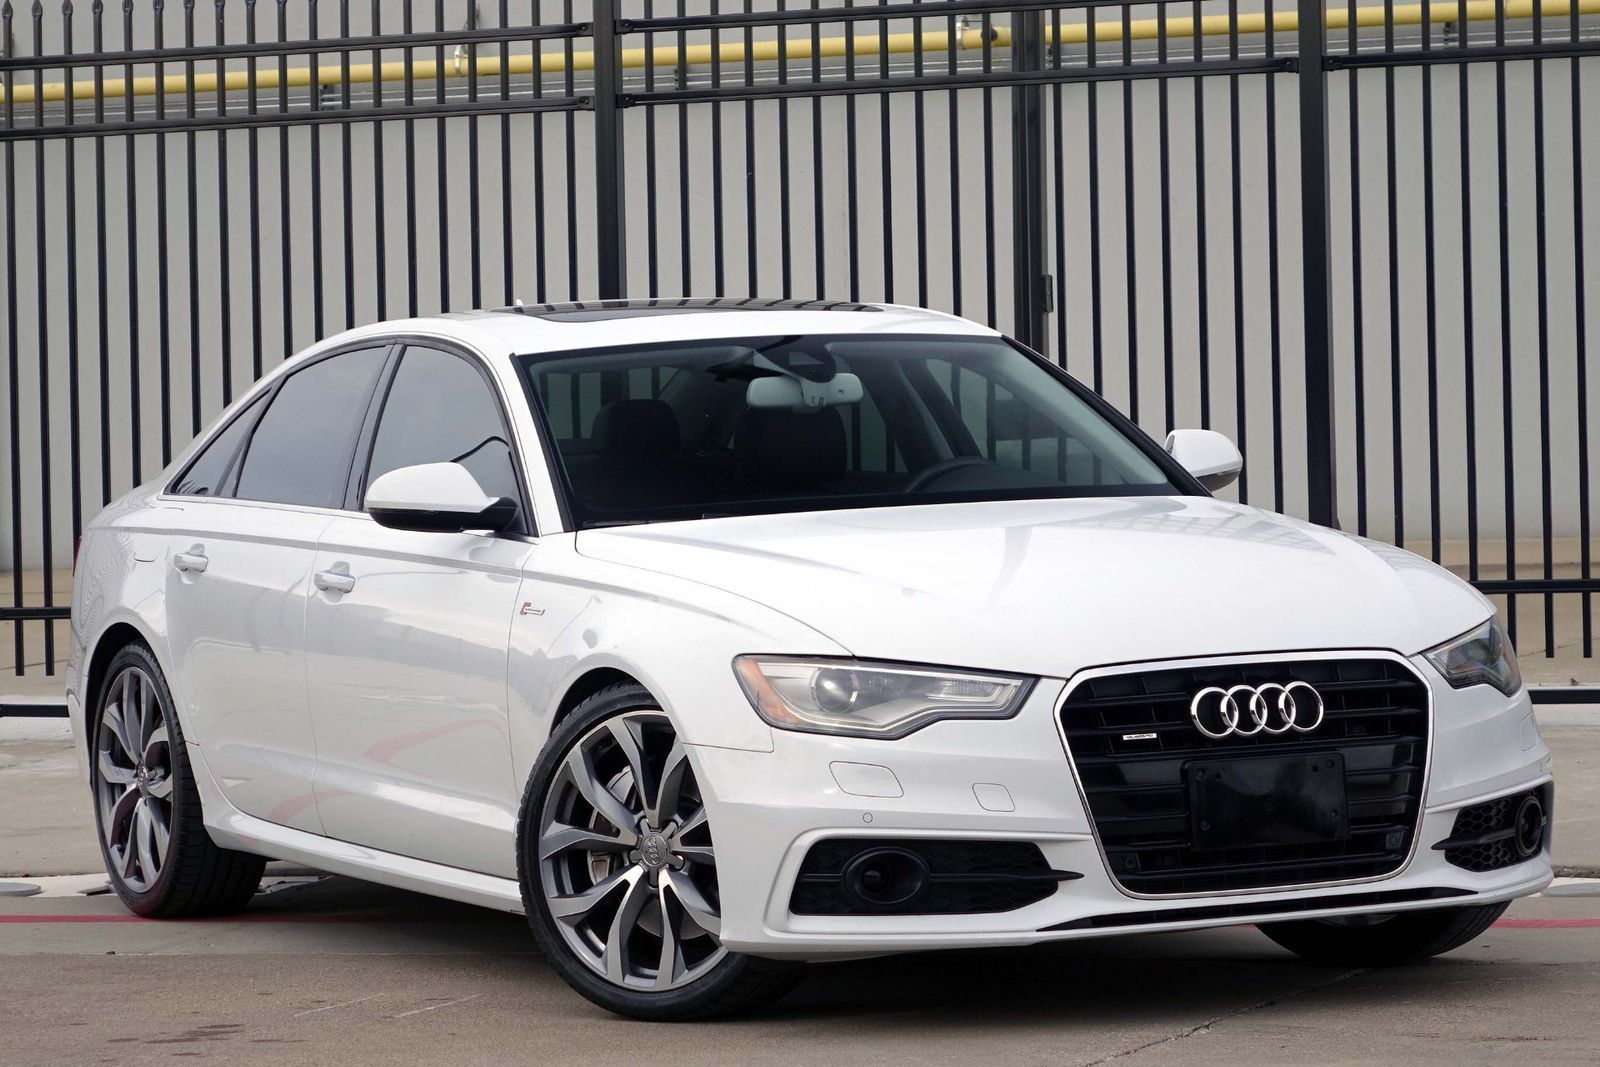 awesome 2012 audi a6 3 0t prestige quattro 2012 white a6 drivers assistance pkg blind. Black Bedroom Furniture Sets. Home Design Ideas